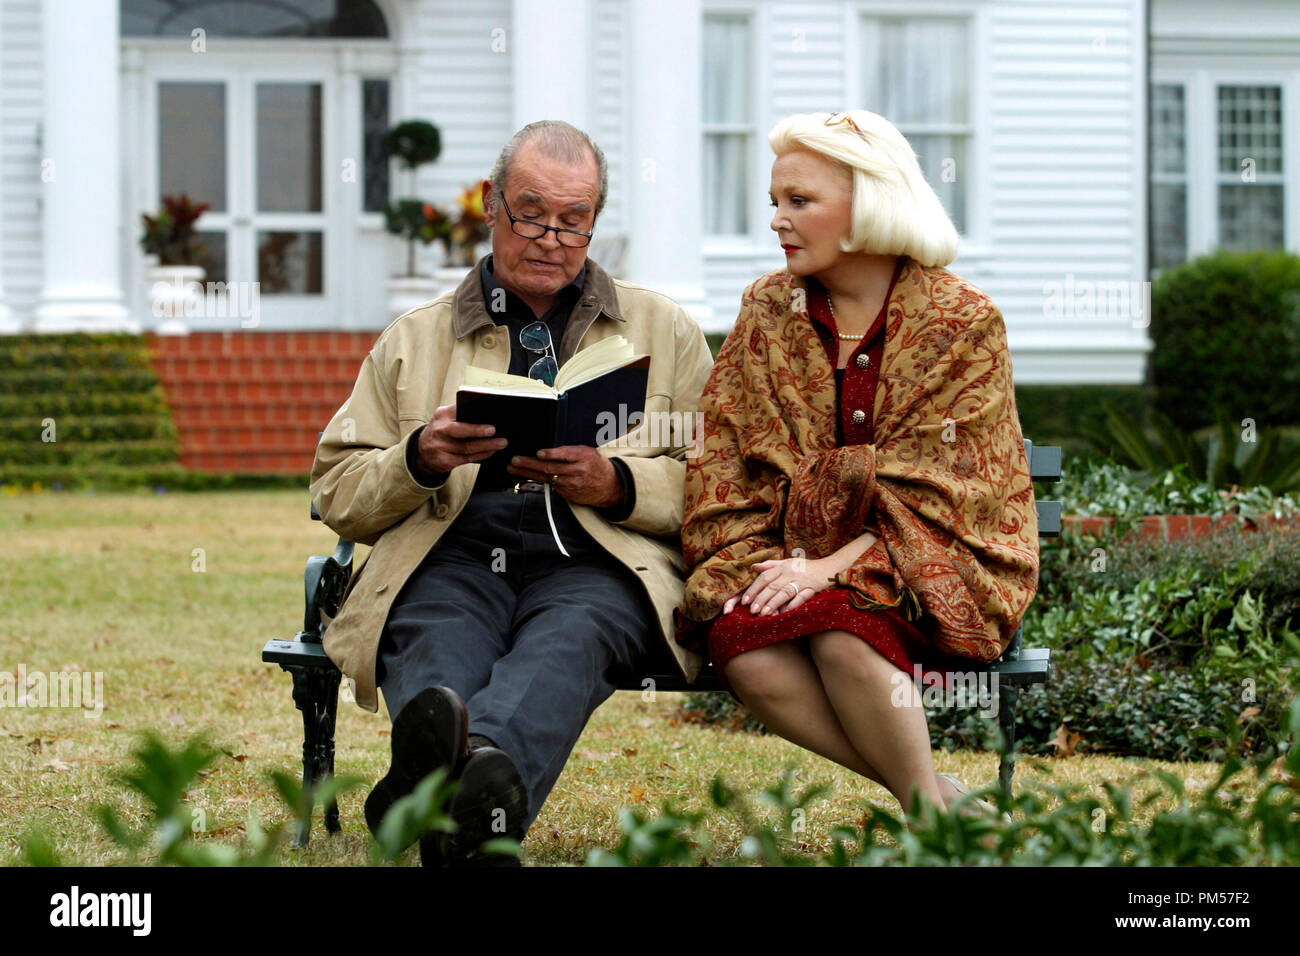 Studio Publicity Still from 'The Notebook' James Garner, Gena Rowlands Photo credit: Melissa Moseley © 2004 New Line Cinema File Reference # 307351761THA  For Editorial Use Only -  All Rights Reserved - Stock Image